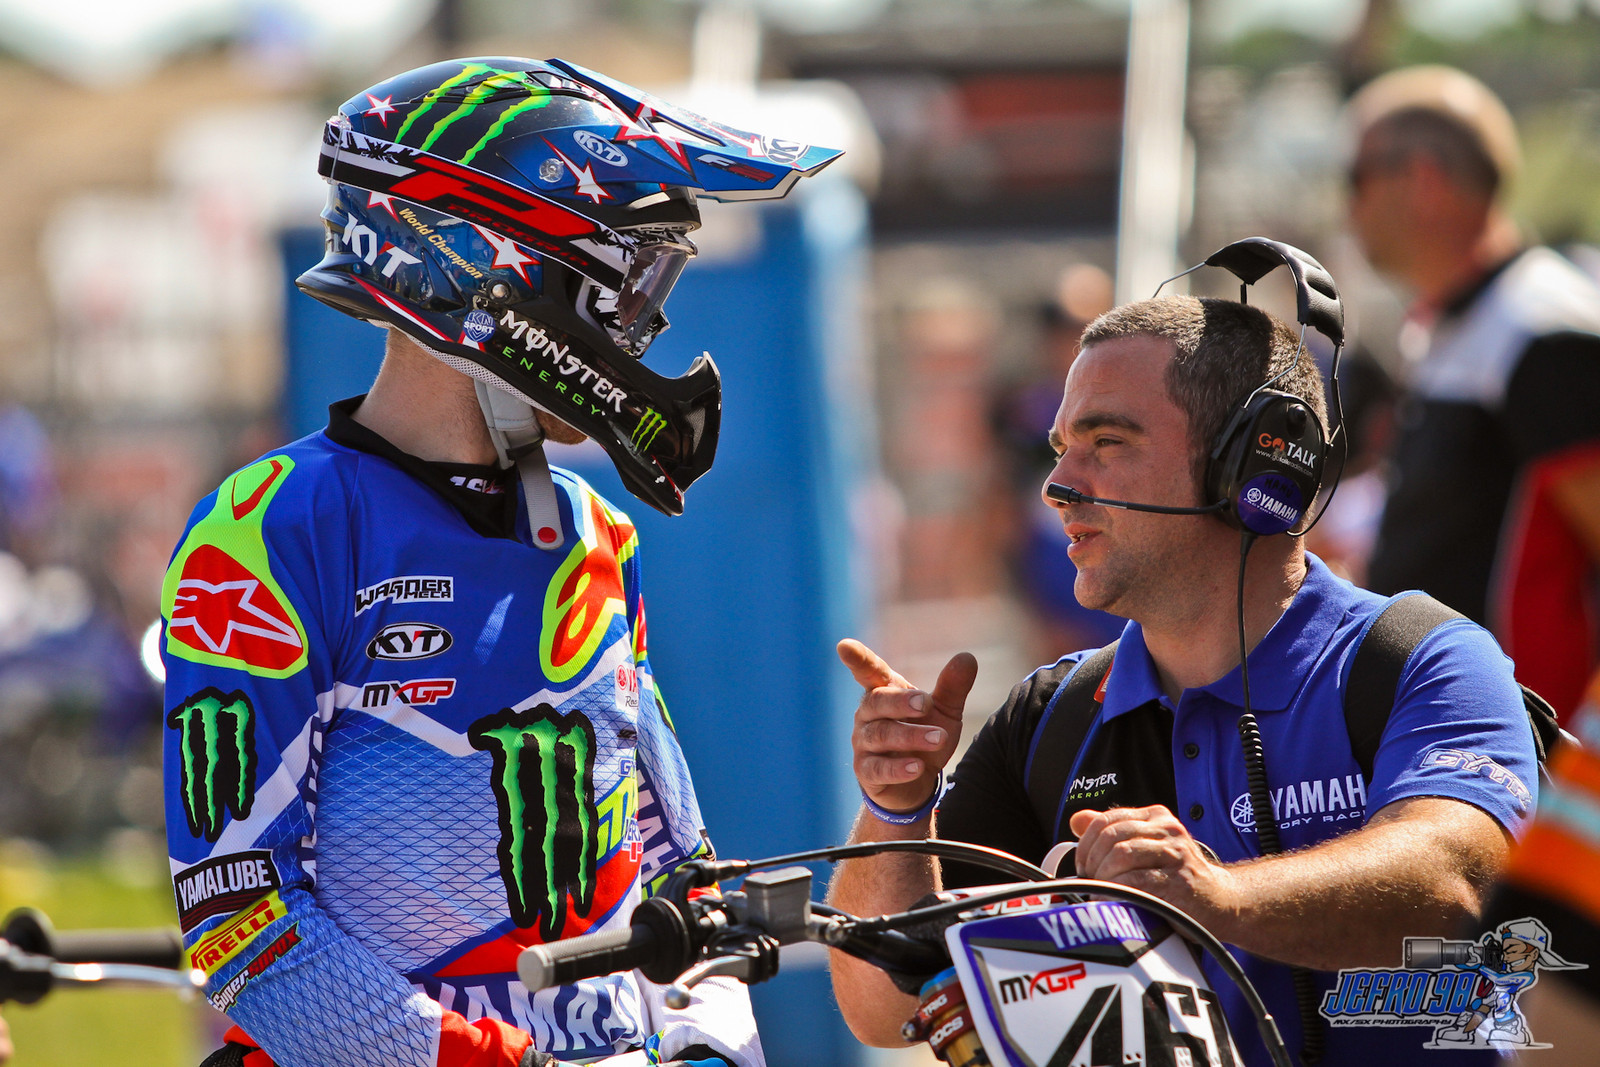 Romain Febvre - Photo Gallery: MXGP of the Netherlands - Motocross Pictures - Vital MX